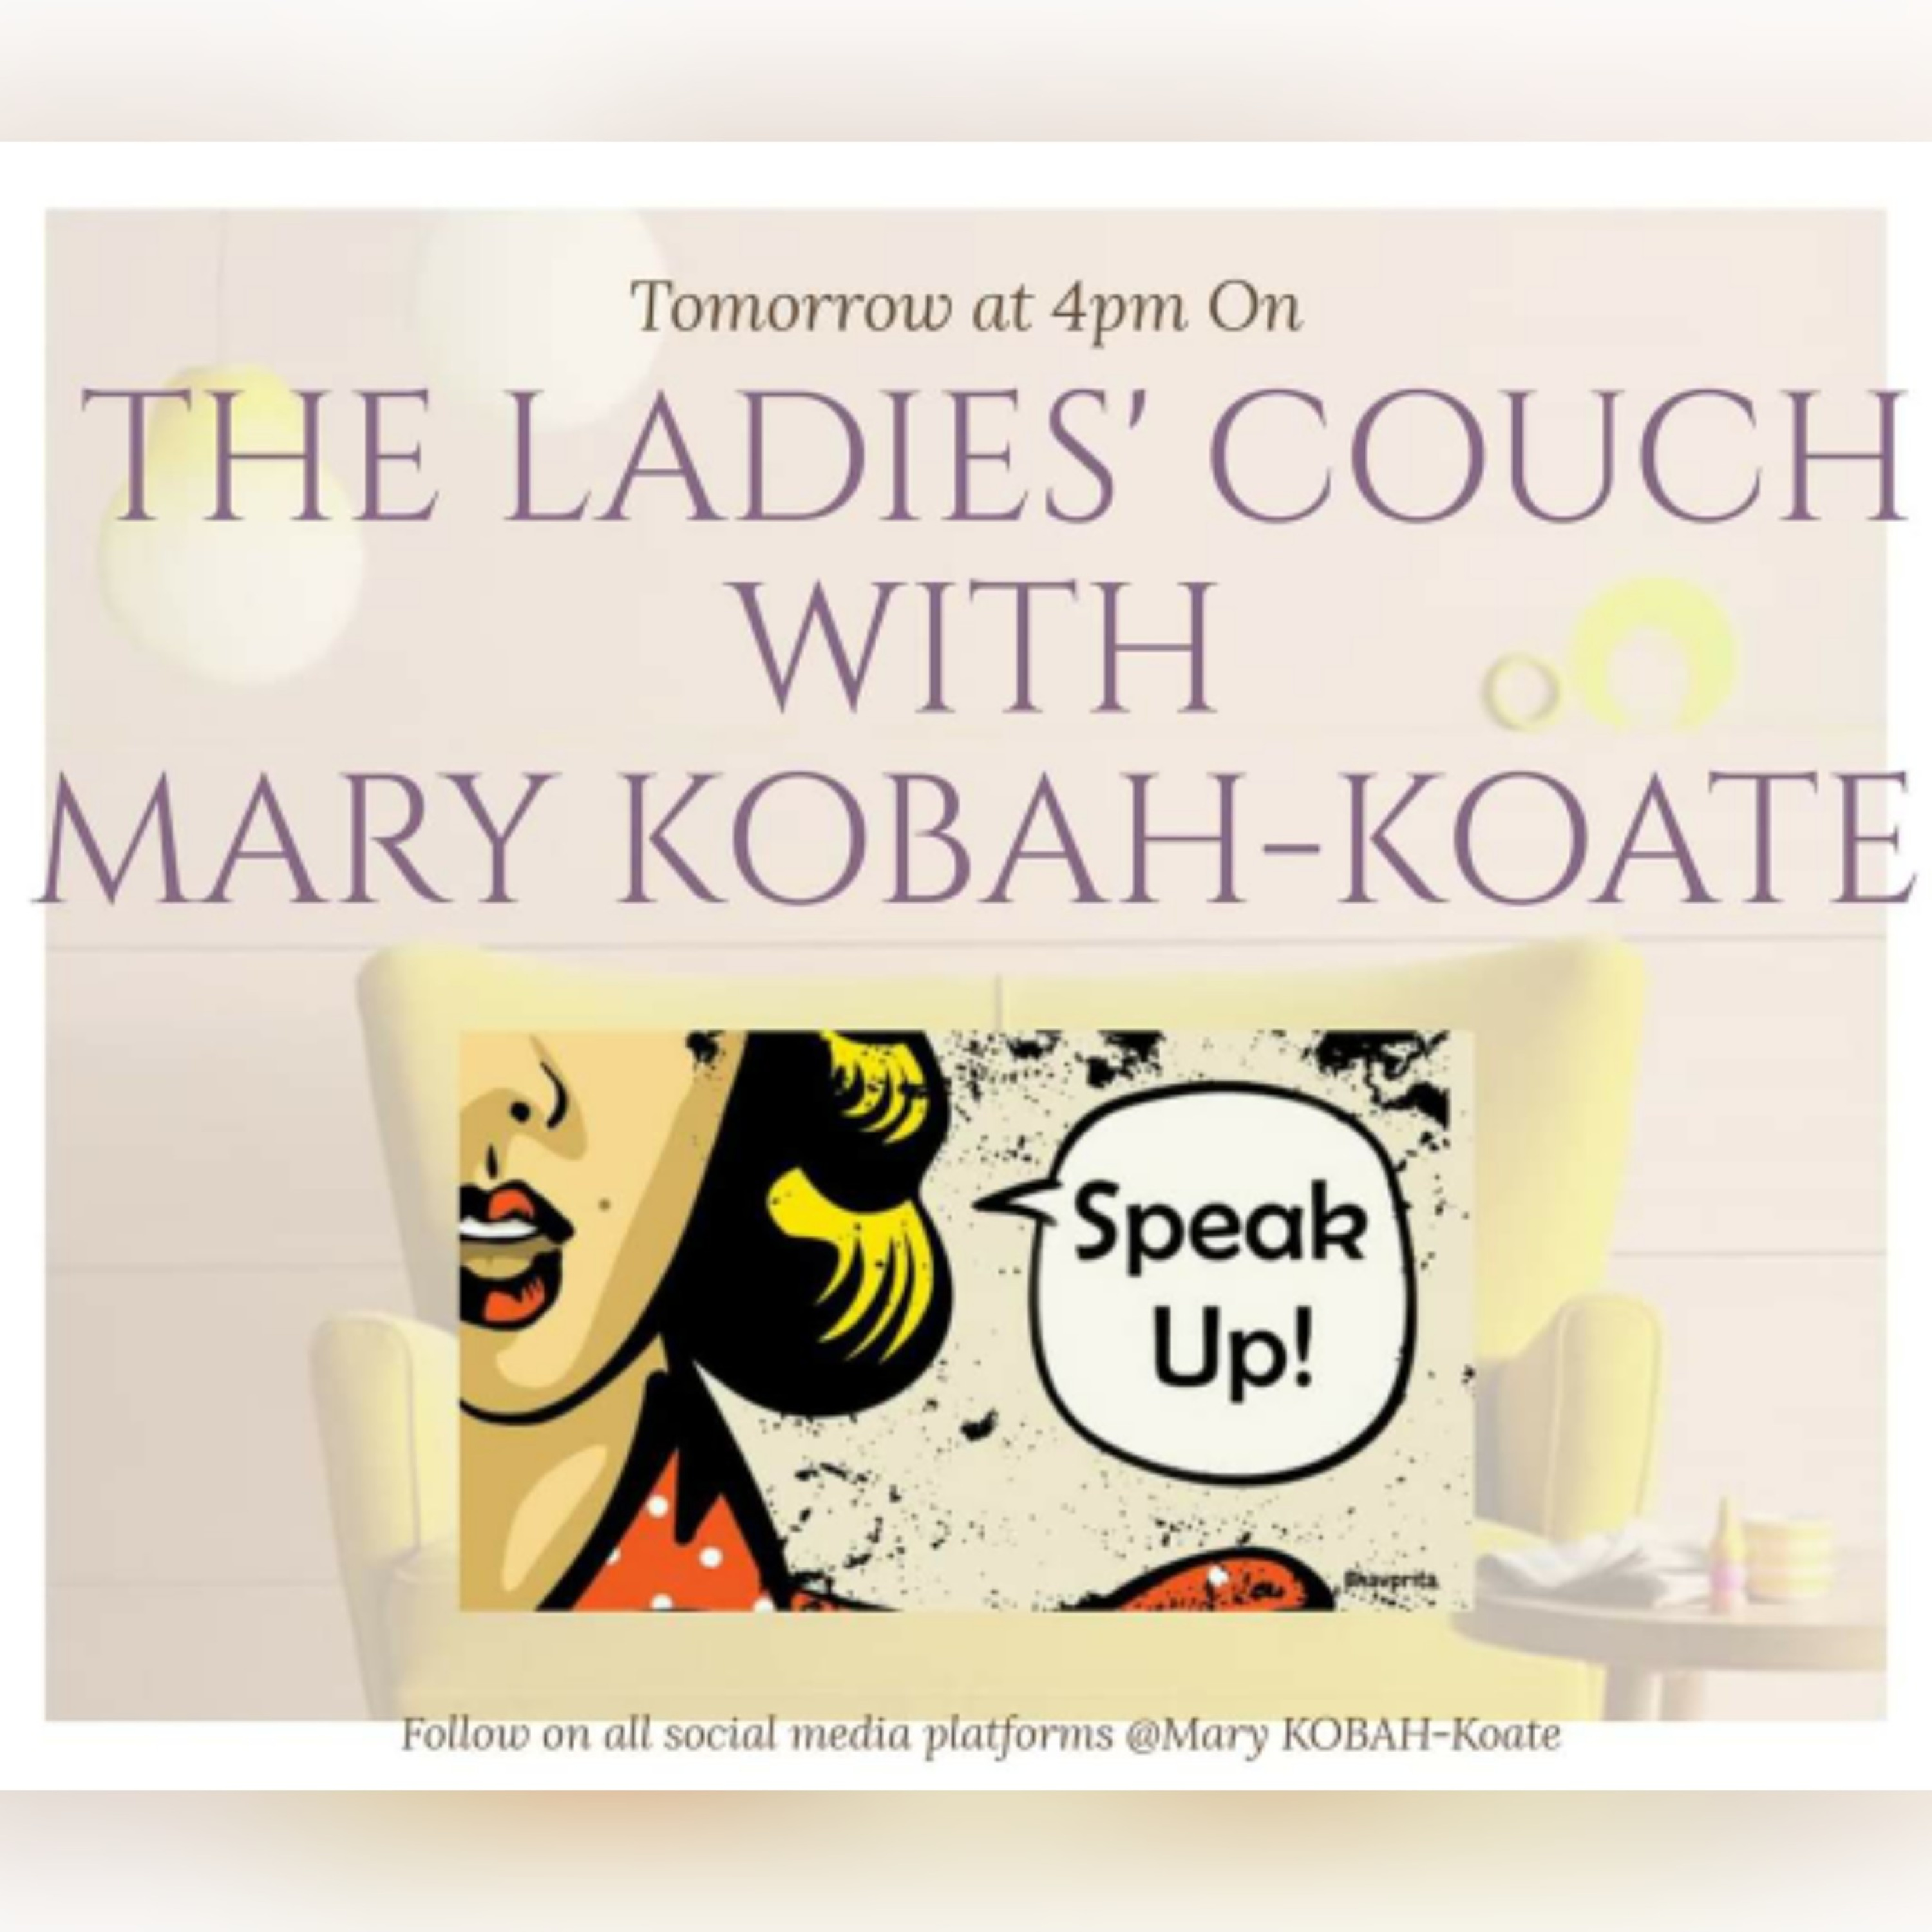 The Ladies' Couch with Mary KOBAH-Koate on Jamit